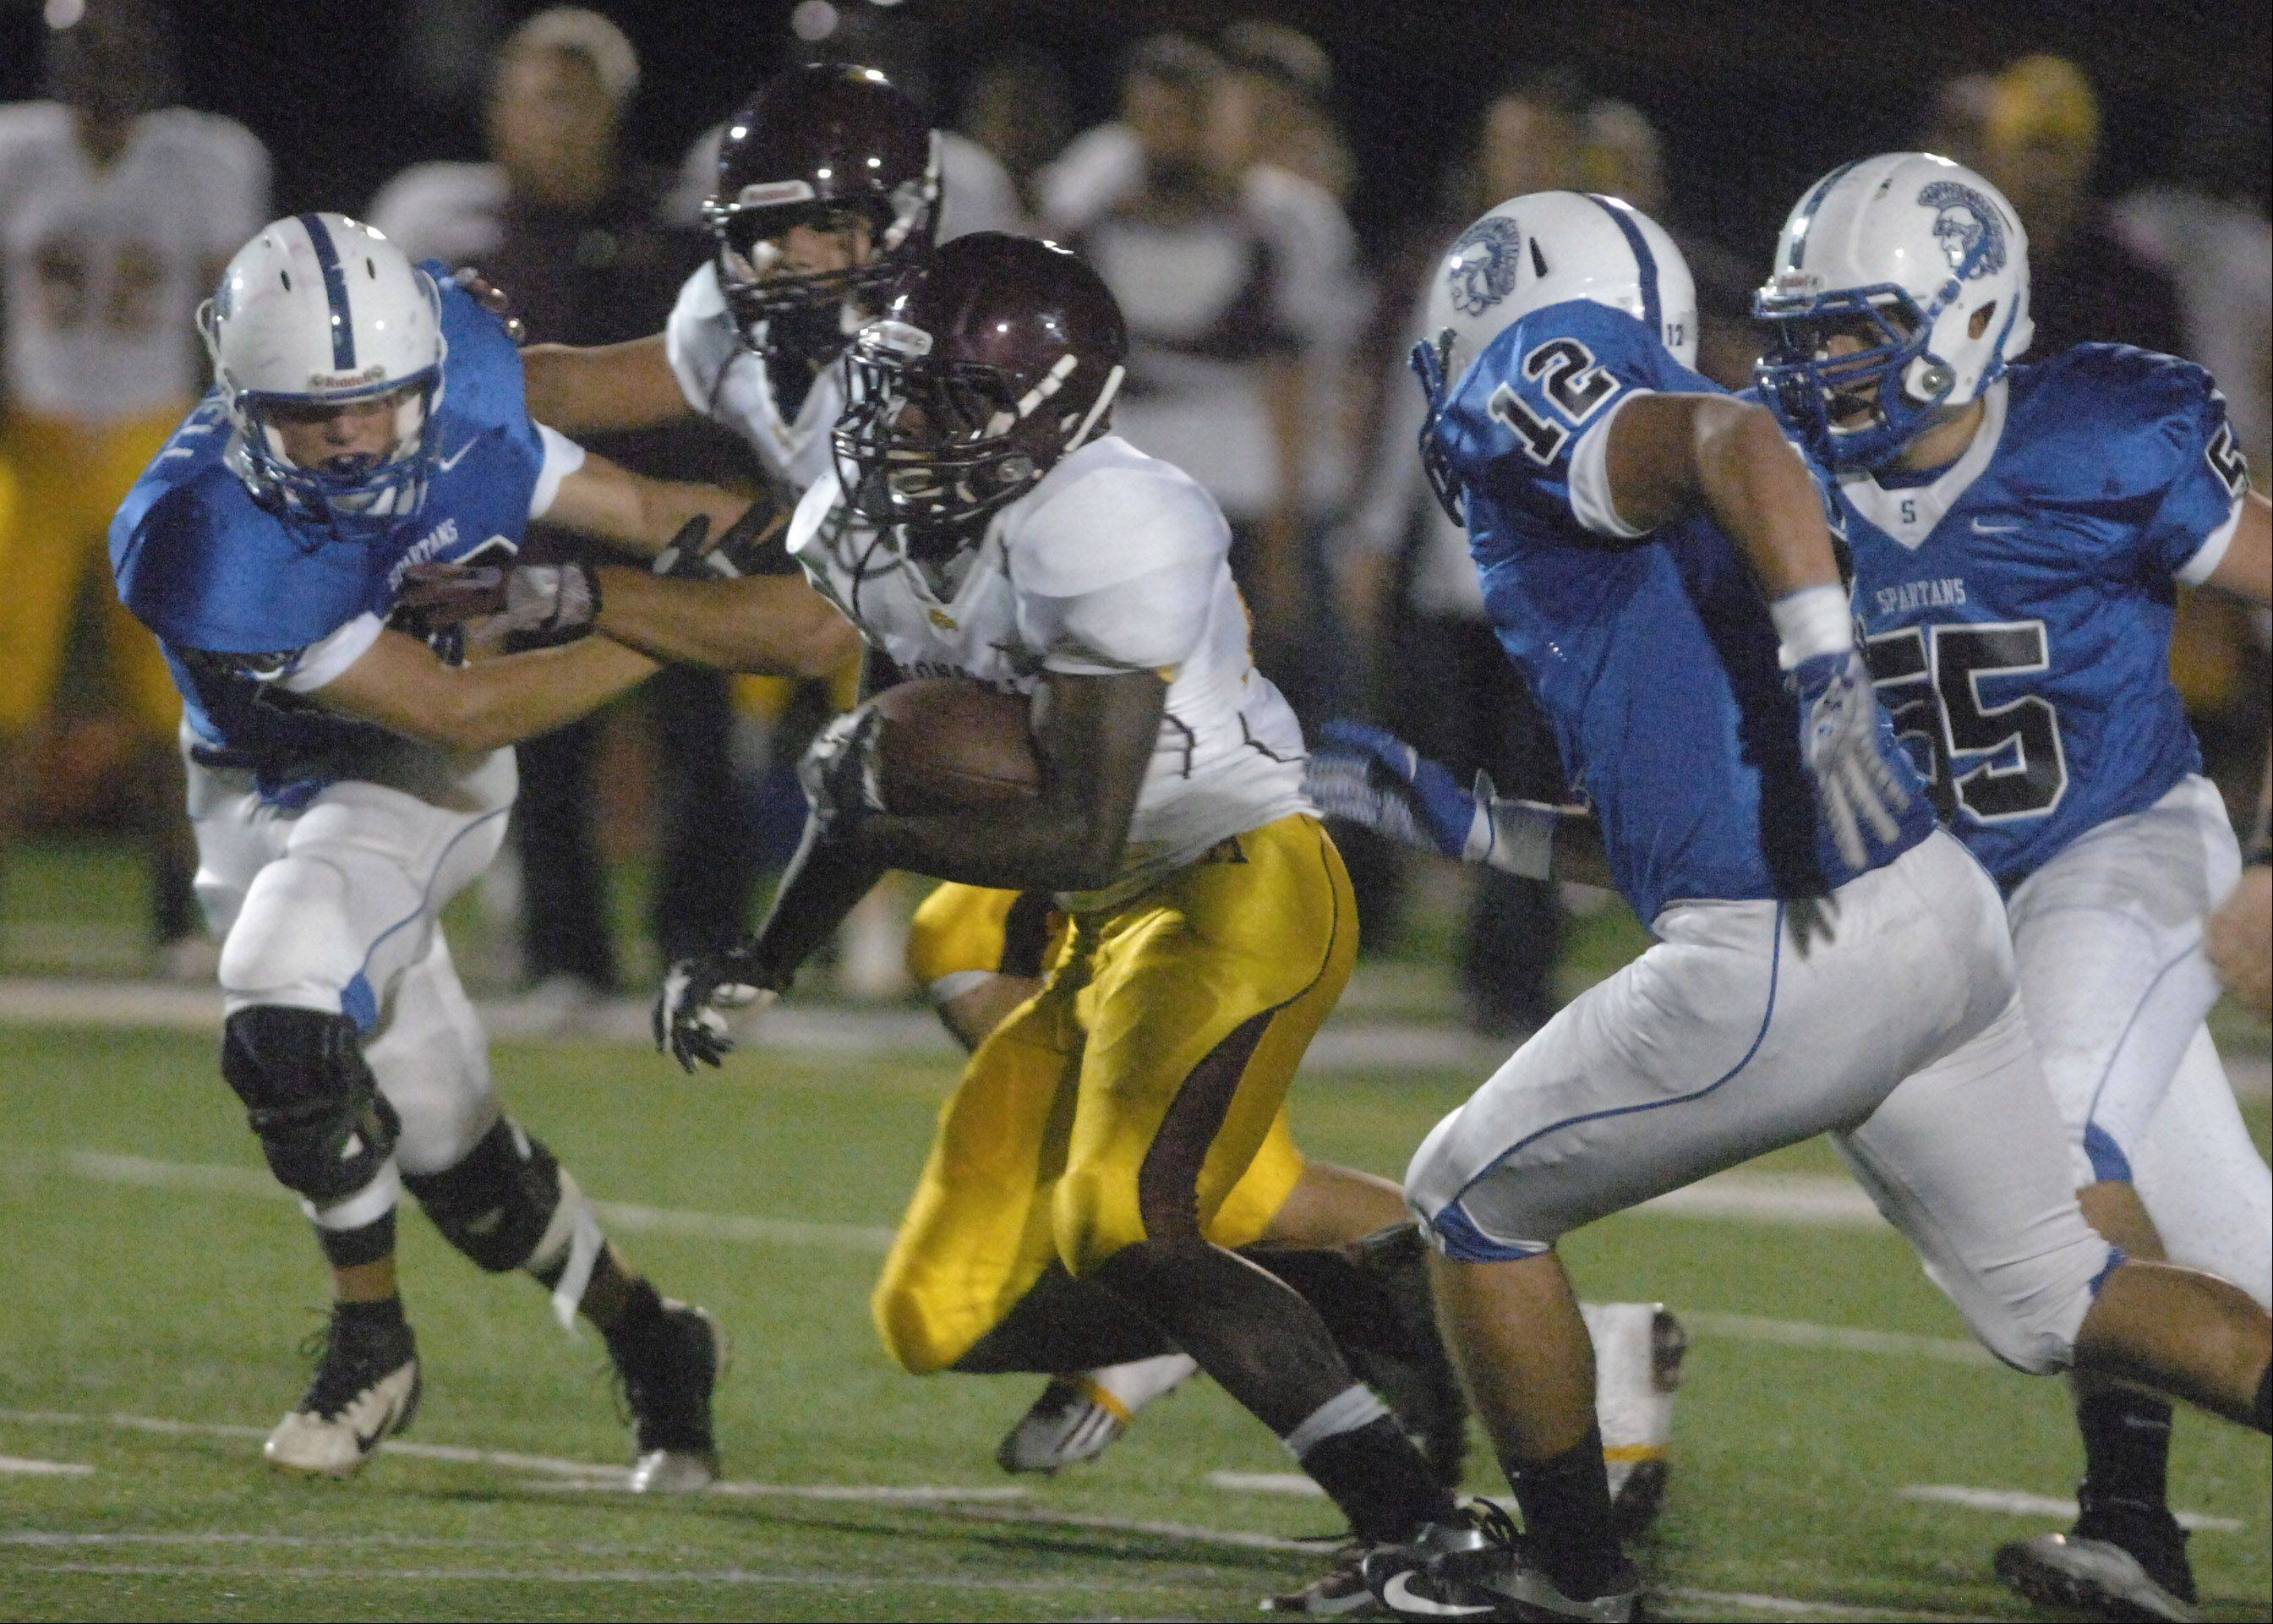 Montini follows through against St. Francis